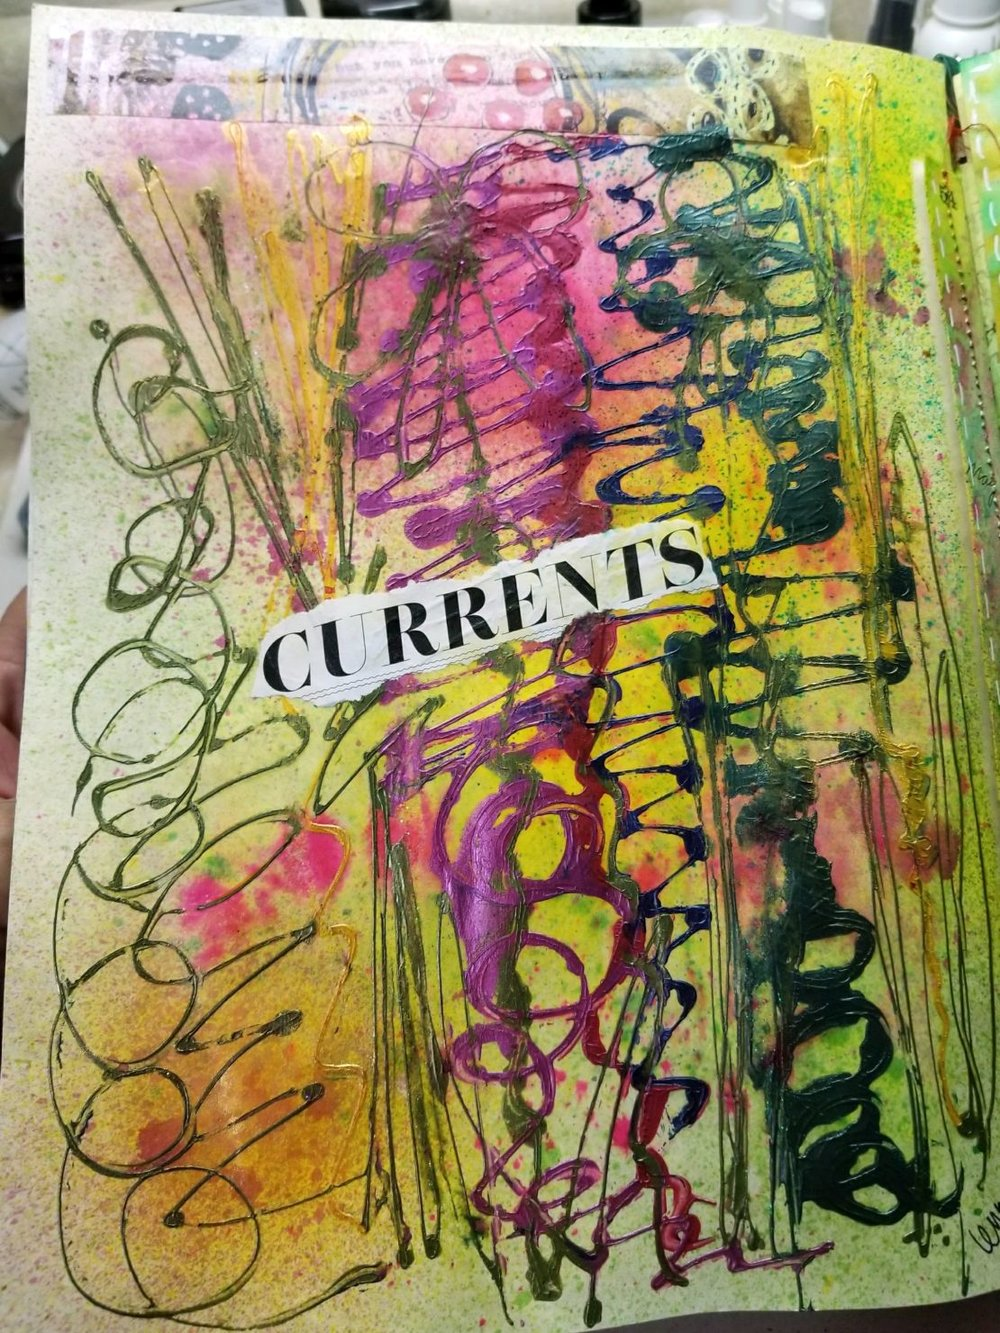 spray inks & collage added